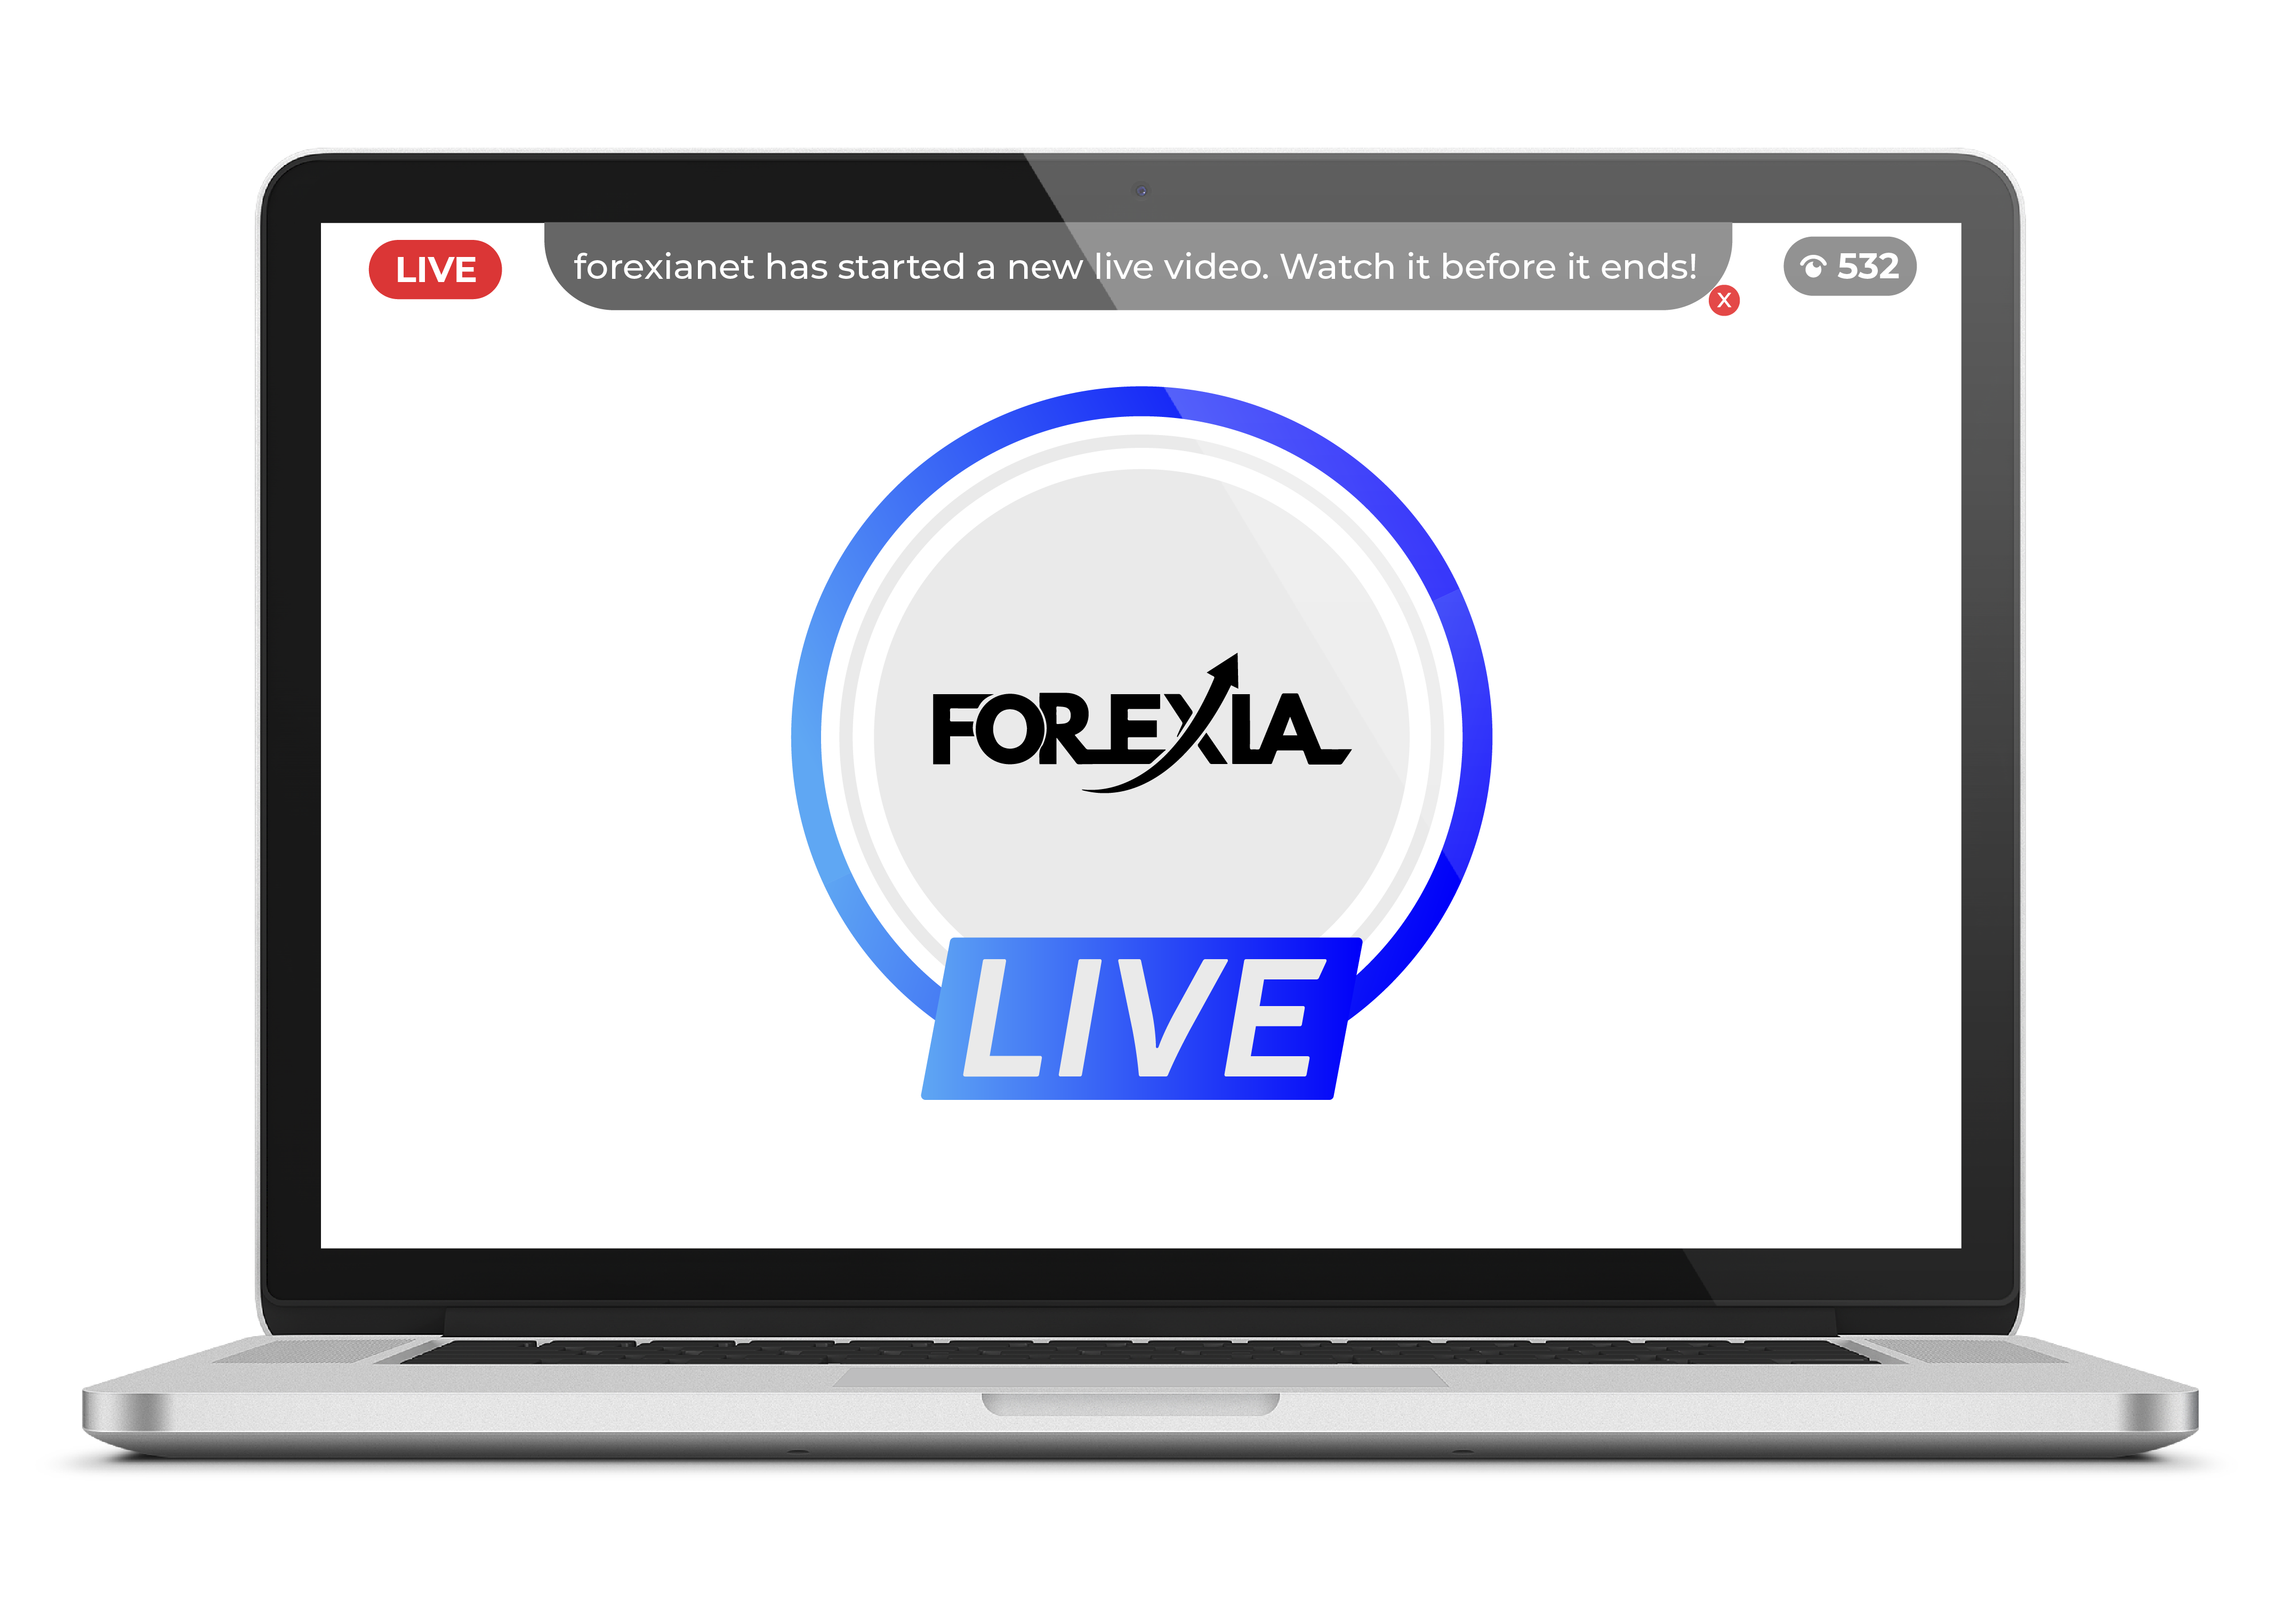 forexia live site